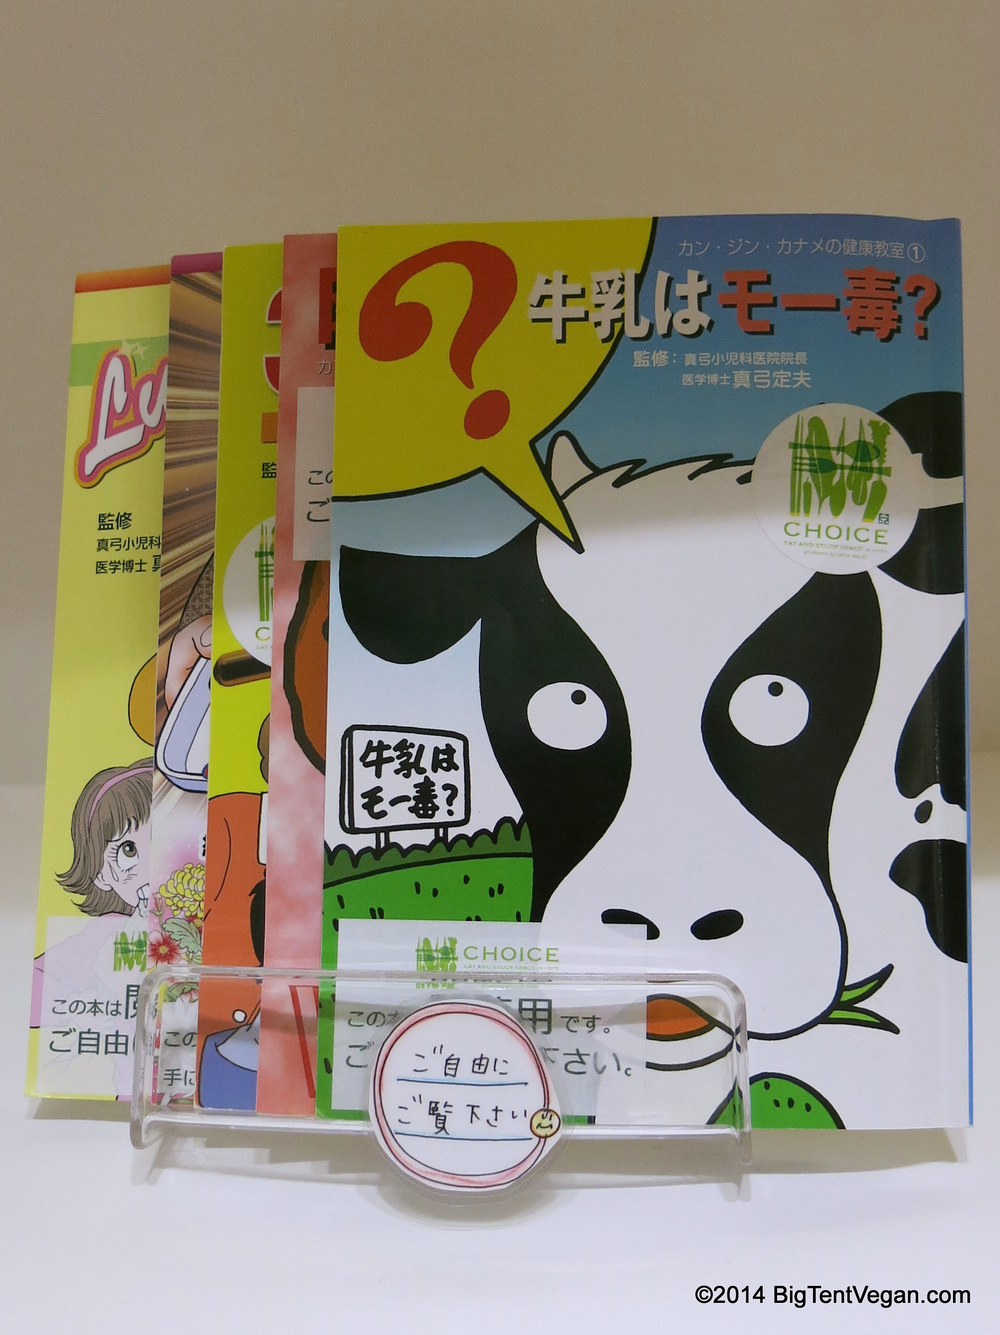 Comic books explaining the dangers and health risks of consuming cow's milk and other animal-based proteins.